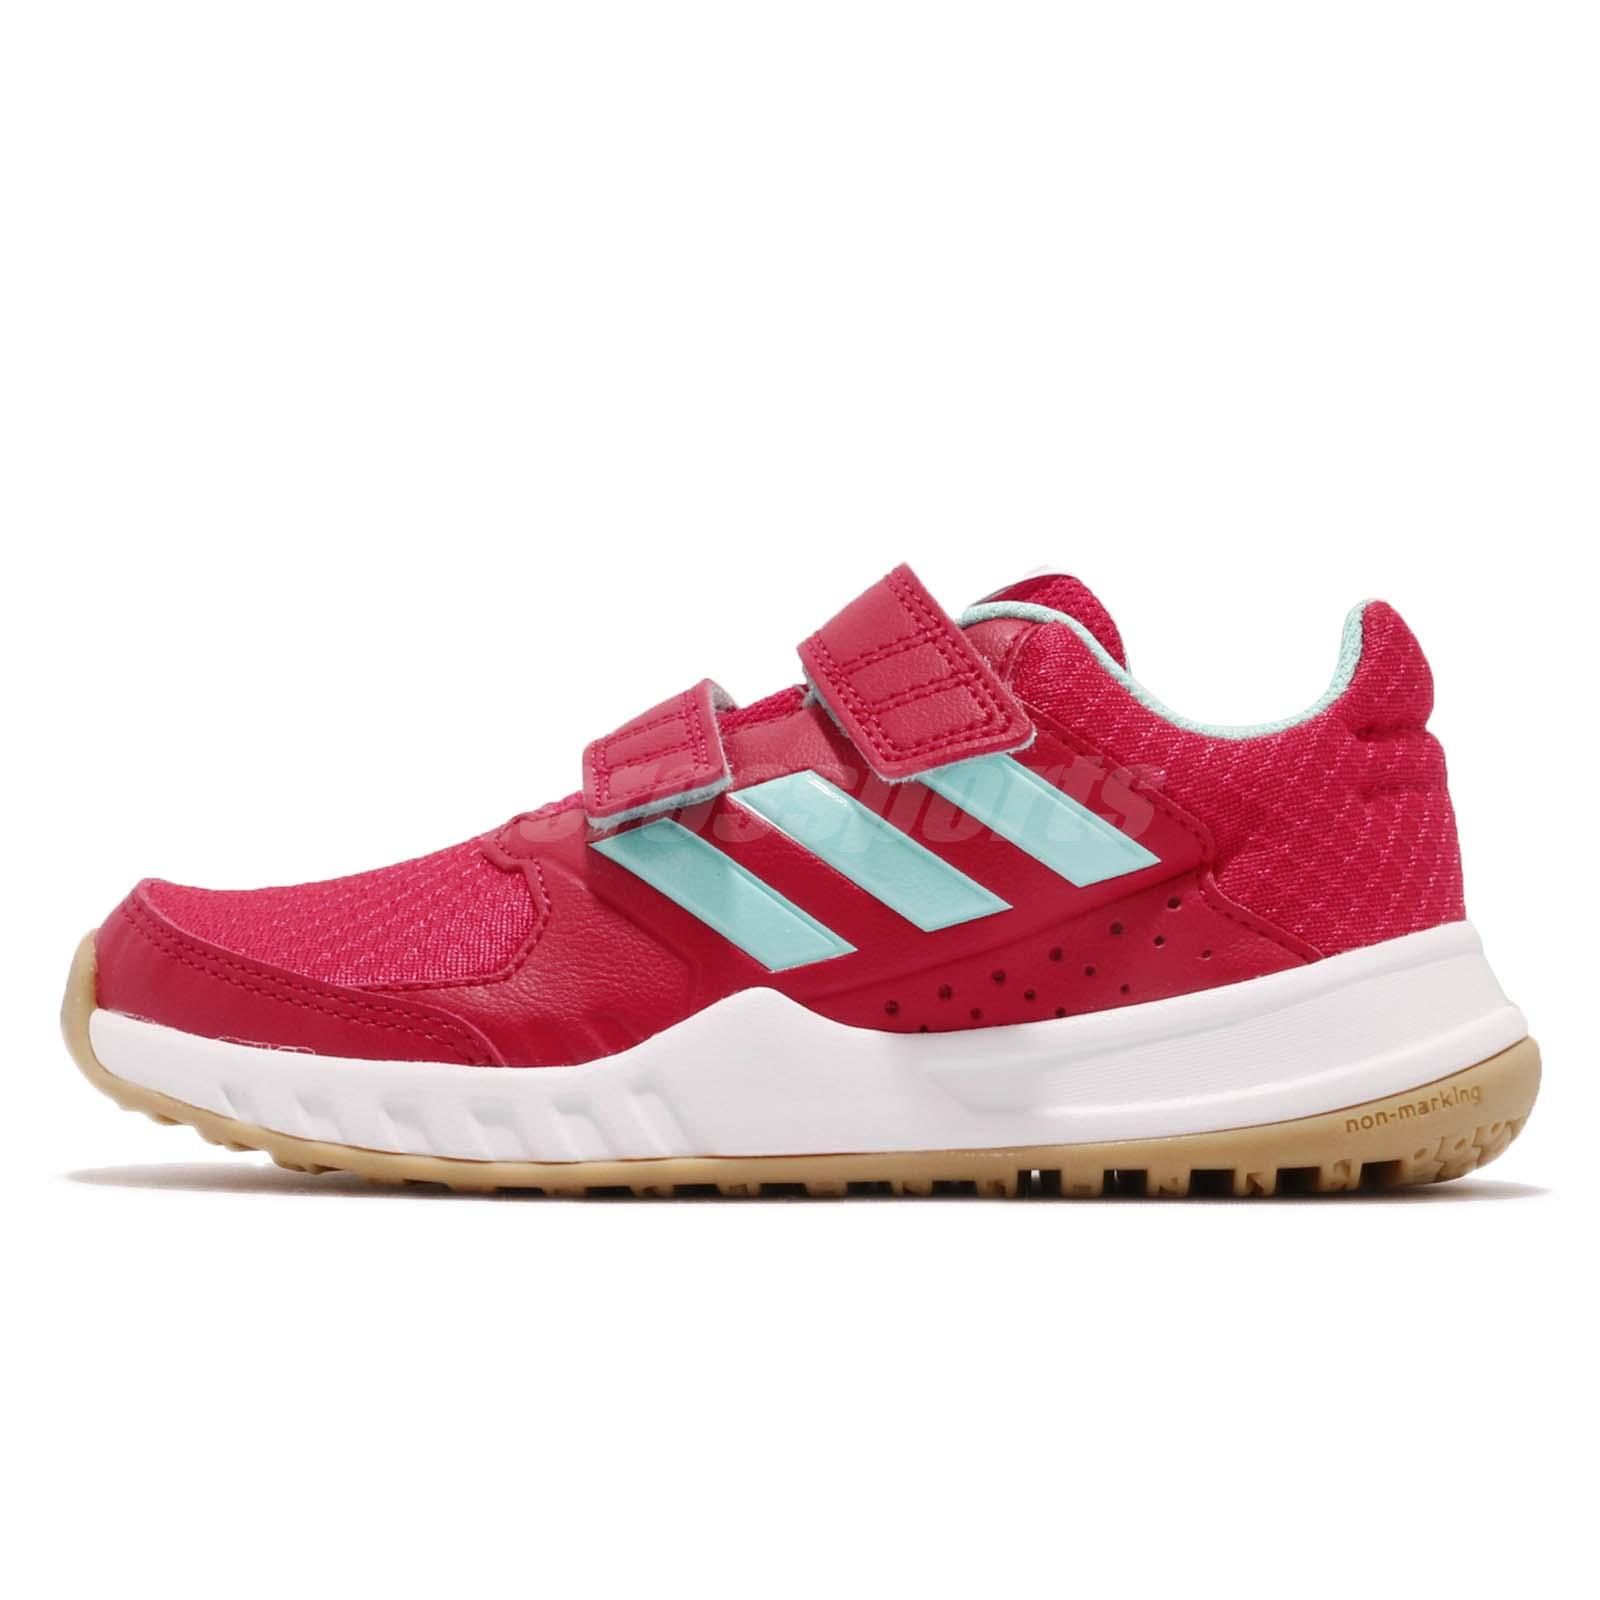 new product 1dea2 0d52b adidas FortaGym CF K Red Blue White Gum Kid Junior Training Shoes Sneaker  CG2680